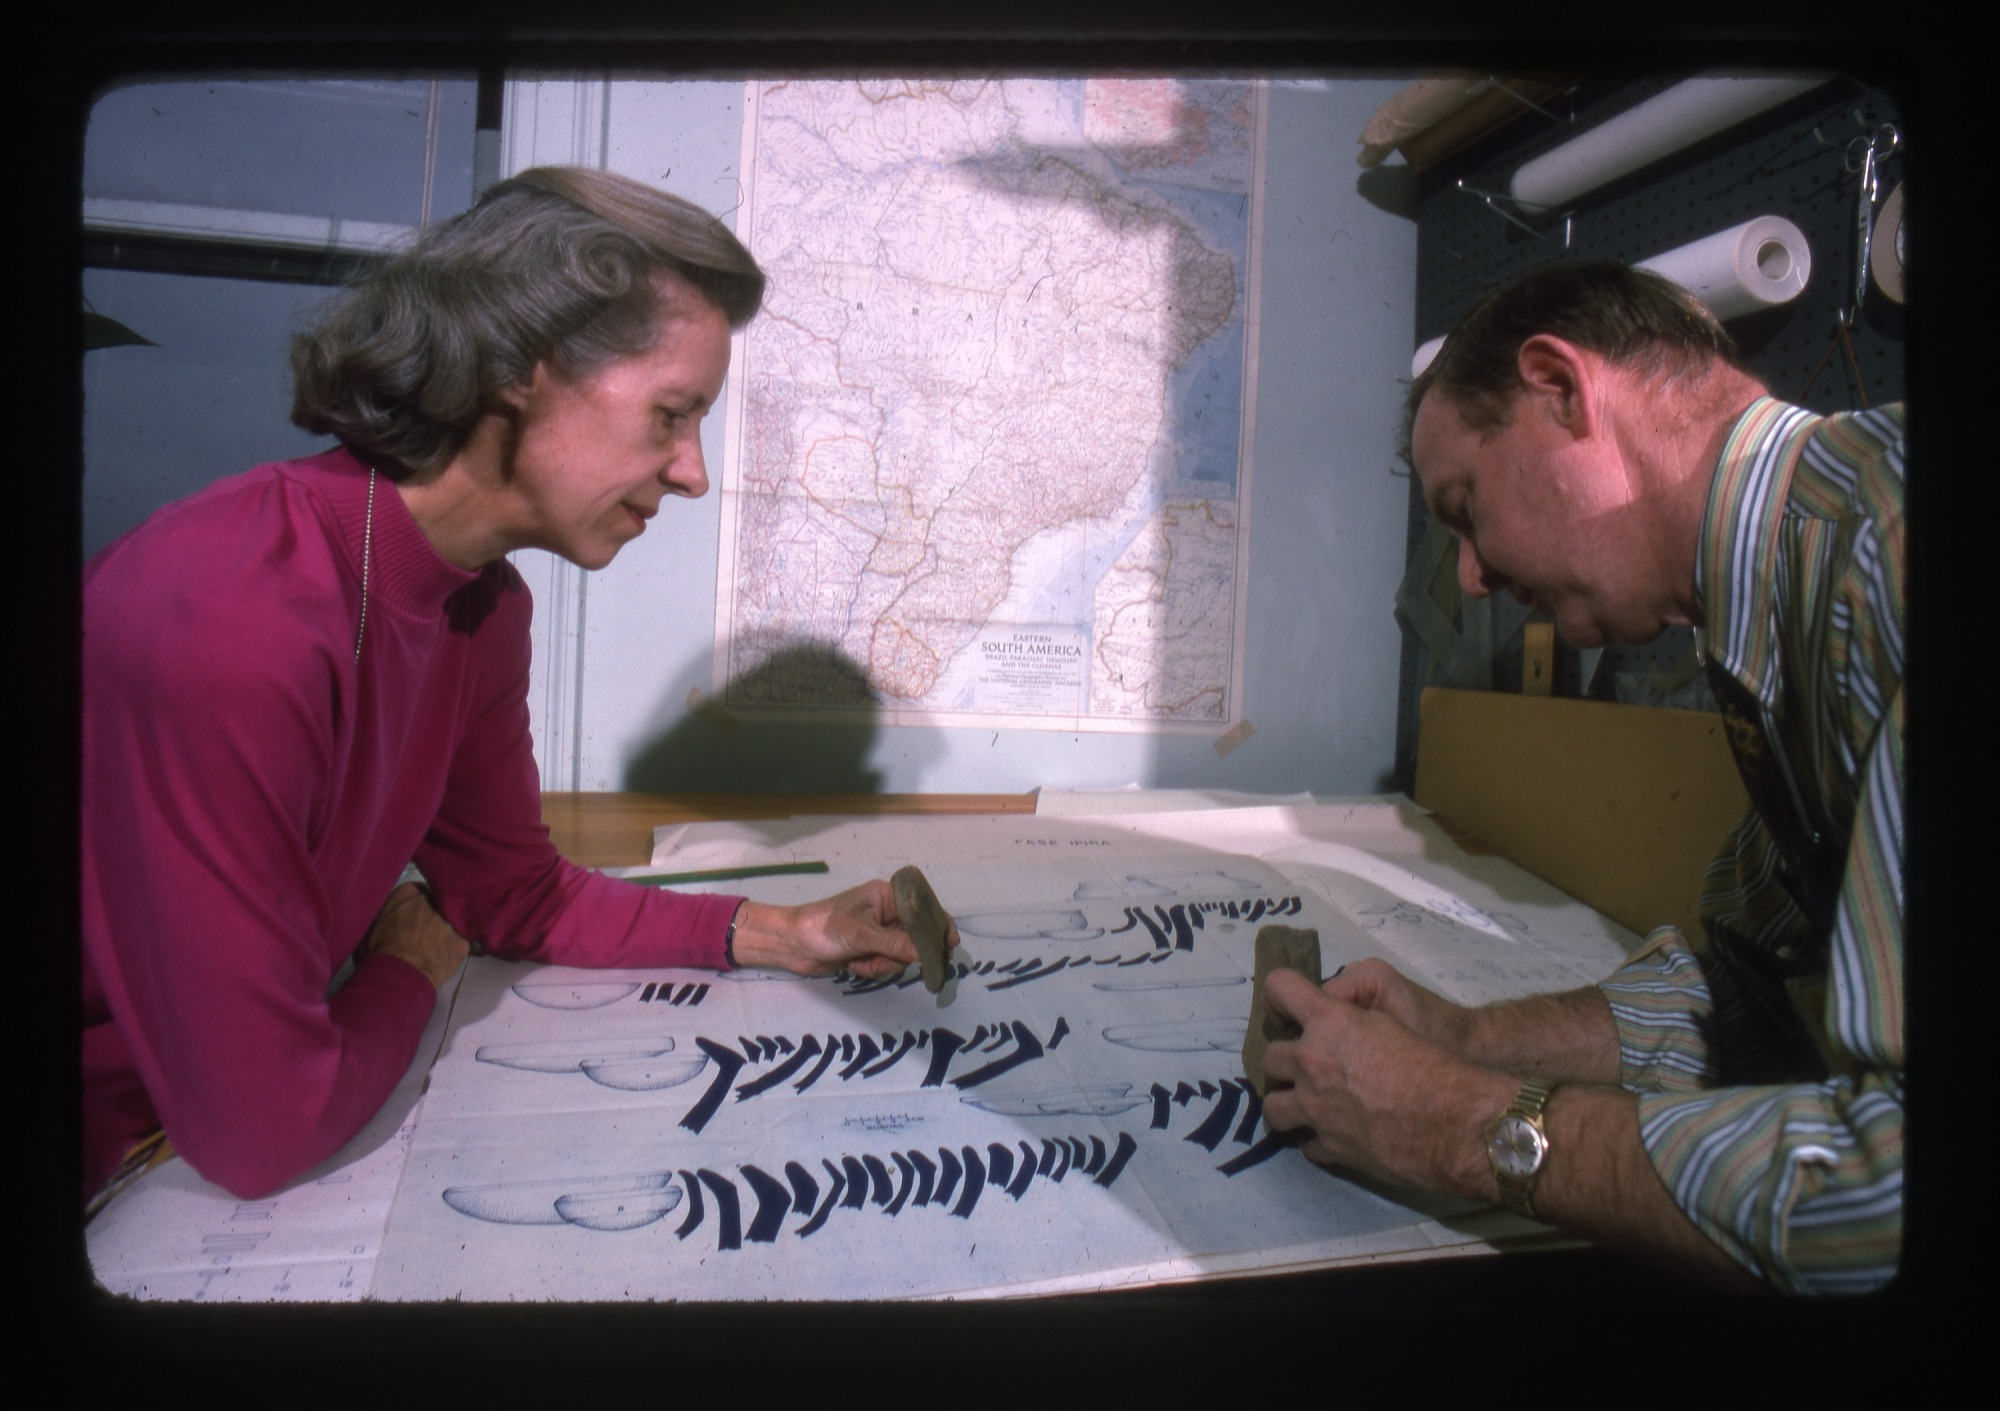 Clifford Evans and Betty Meggers Leaning Over Diagram